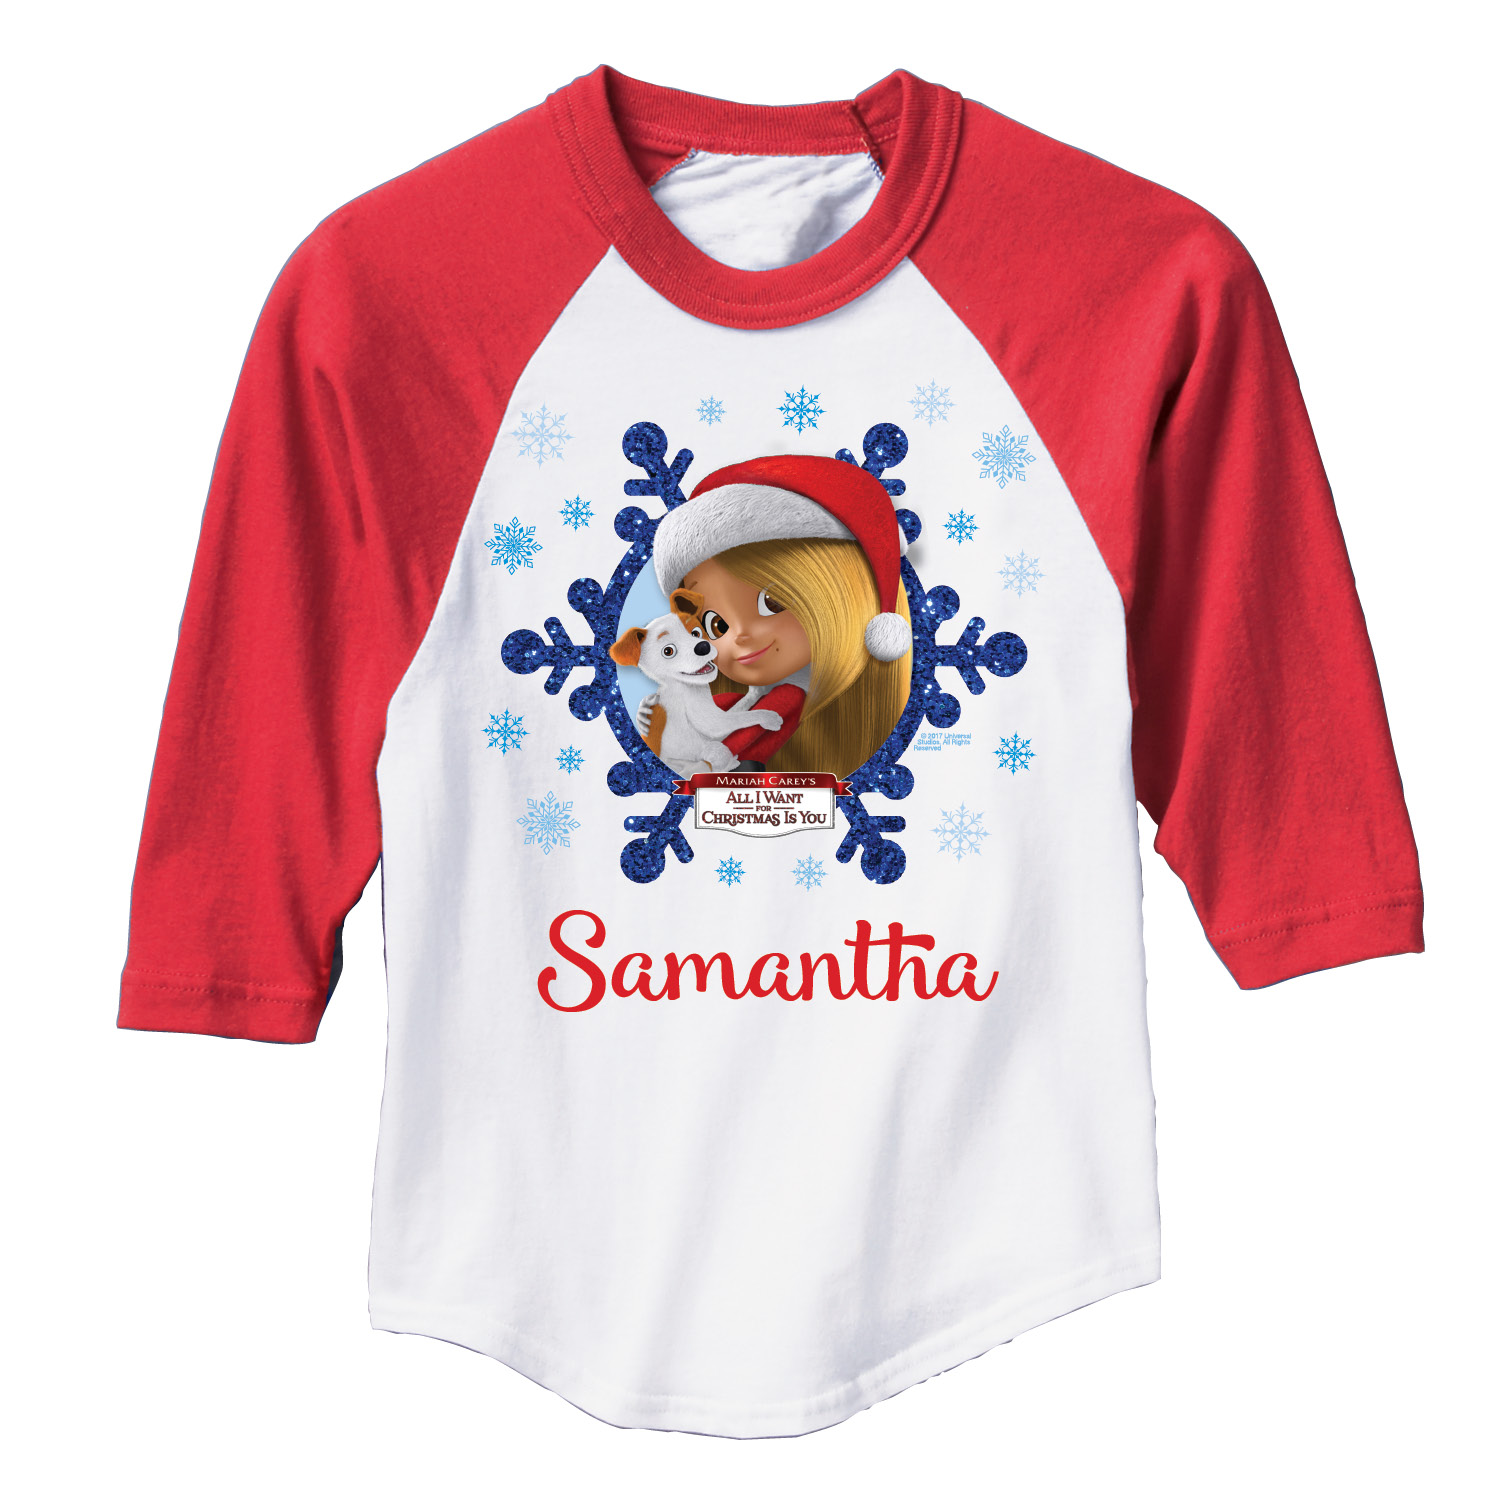 All I Want For Christmas Mariah Carey.Personalized Mariah Carey All I Want For Christmas Youth Girl Red Sports Jersey